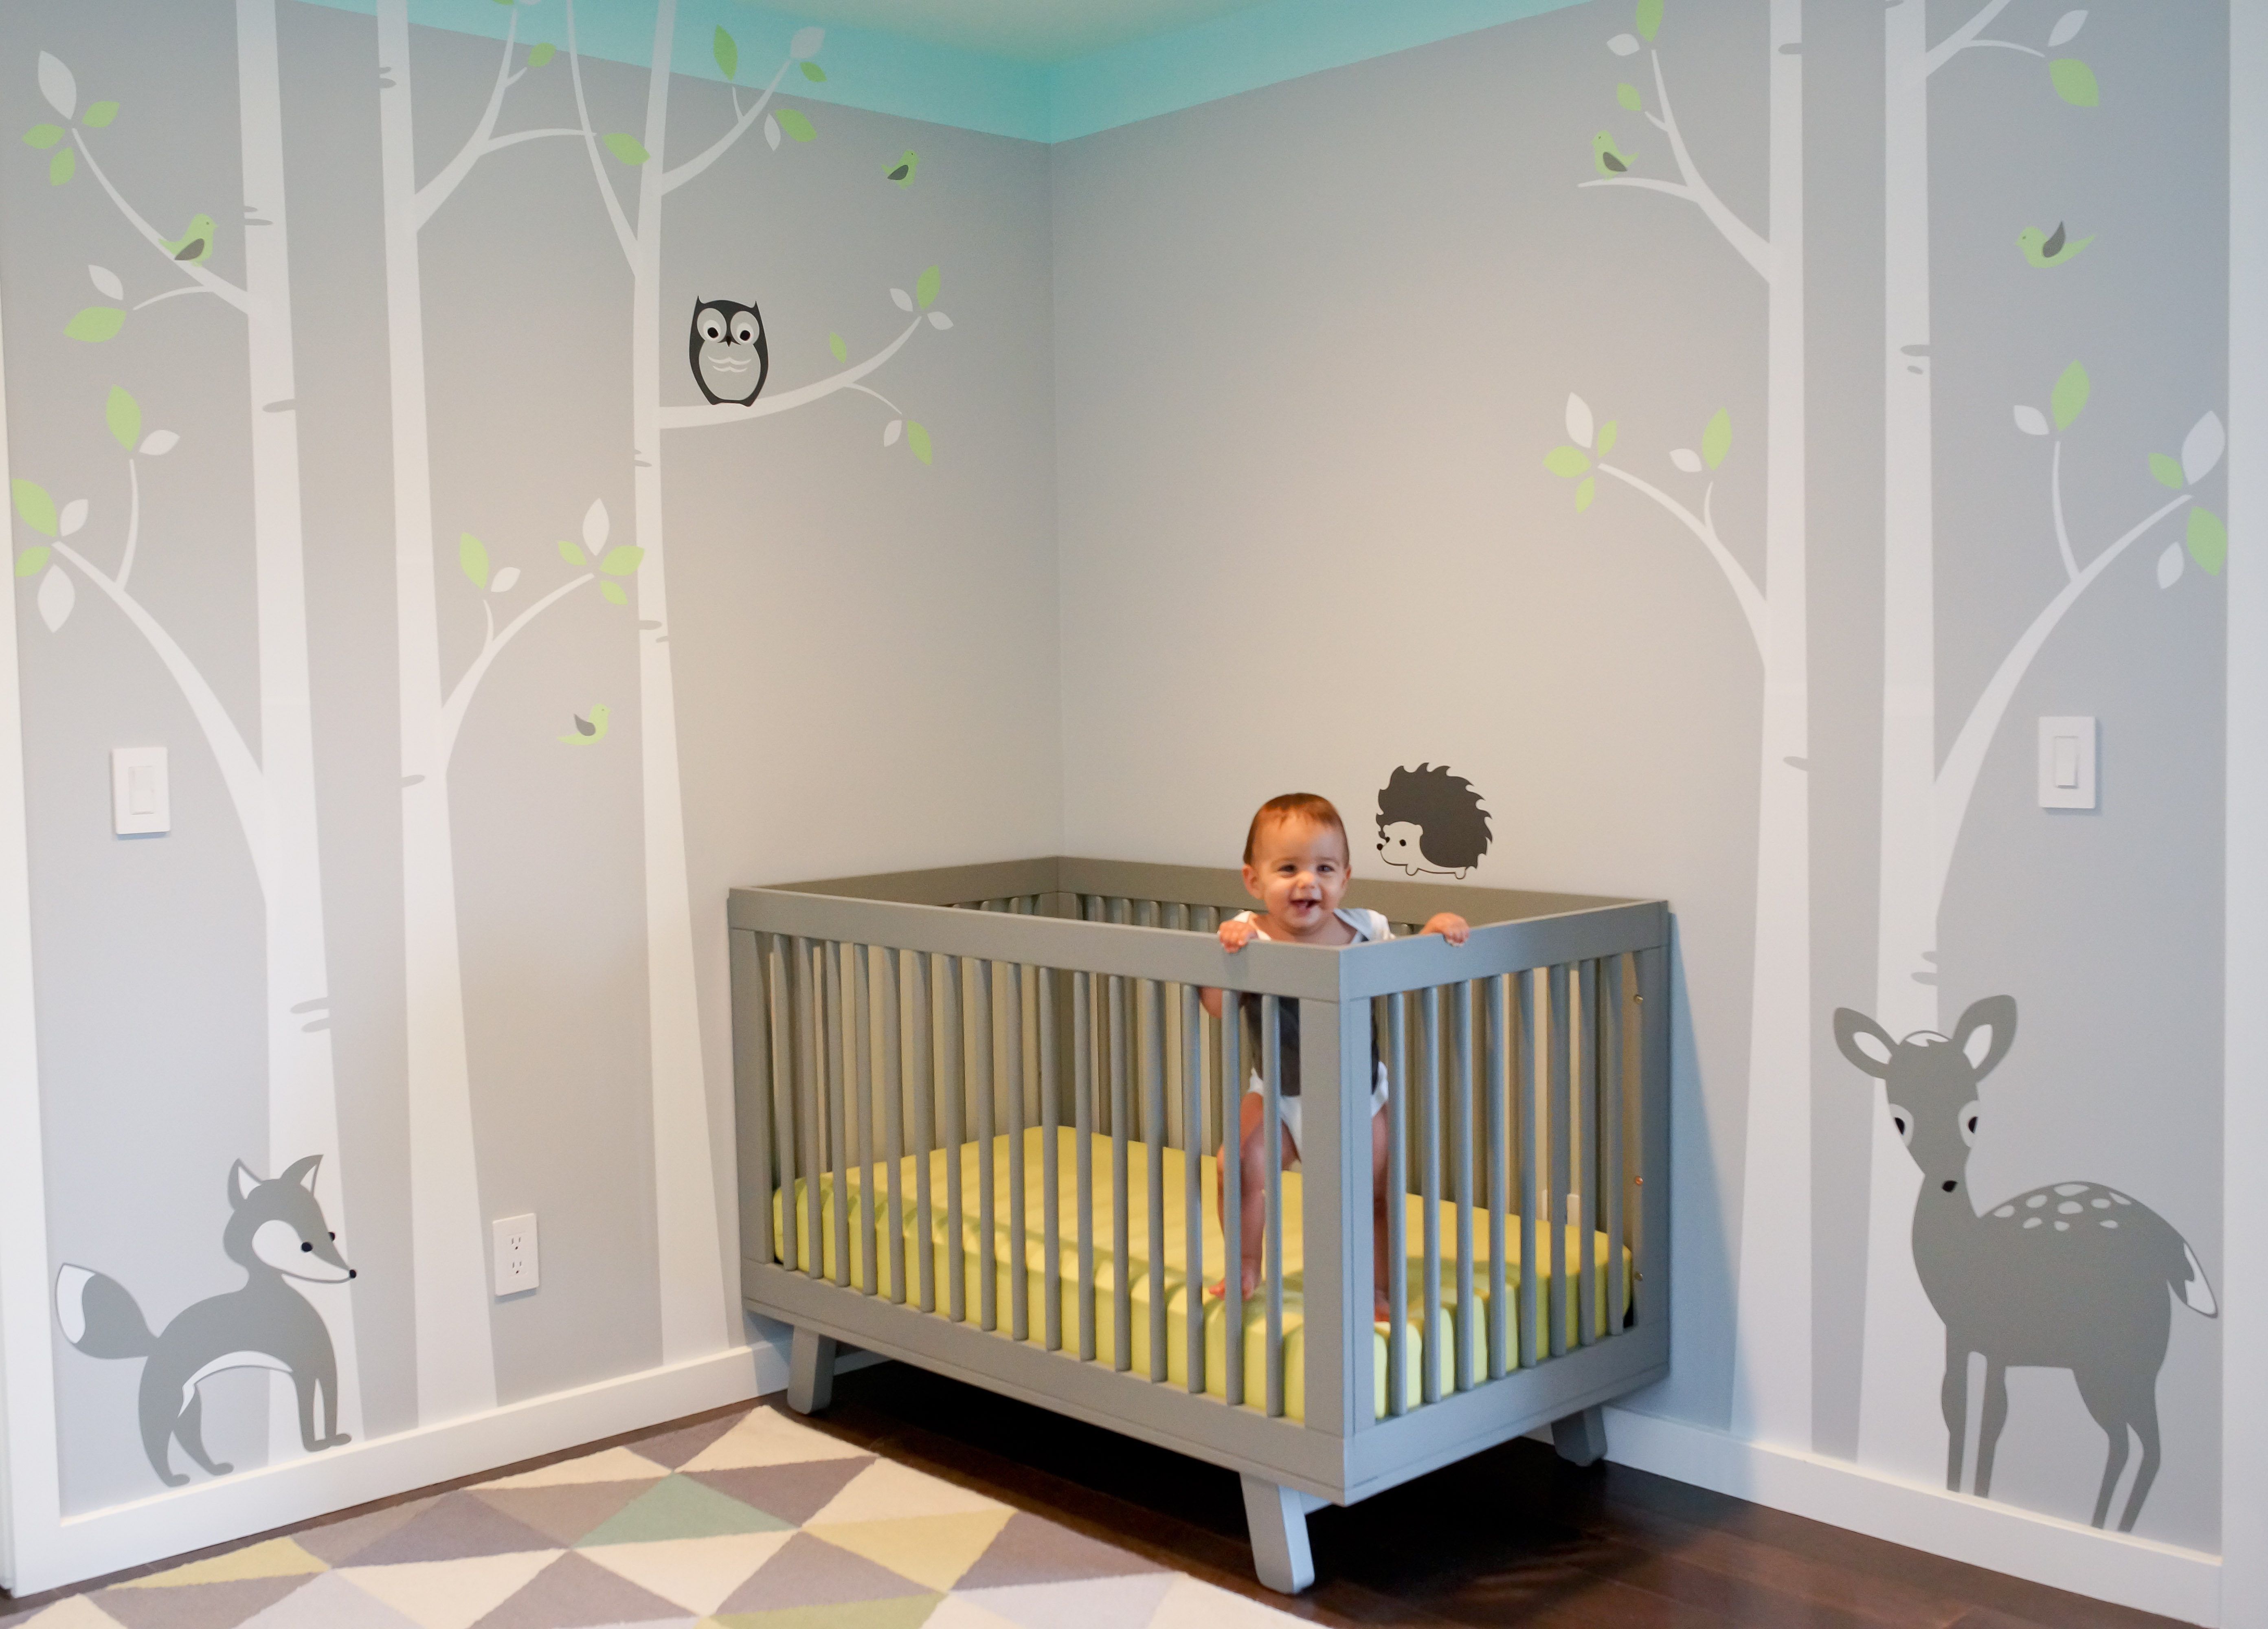 An overview of baby room décor